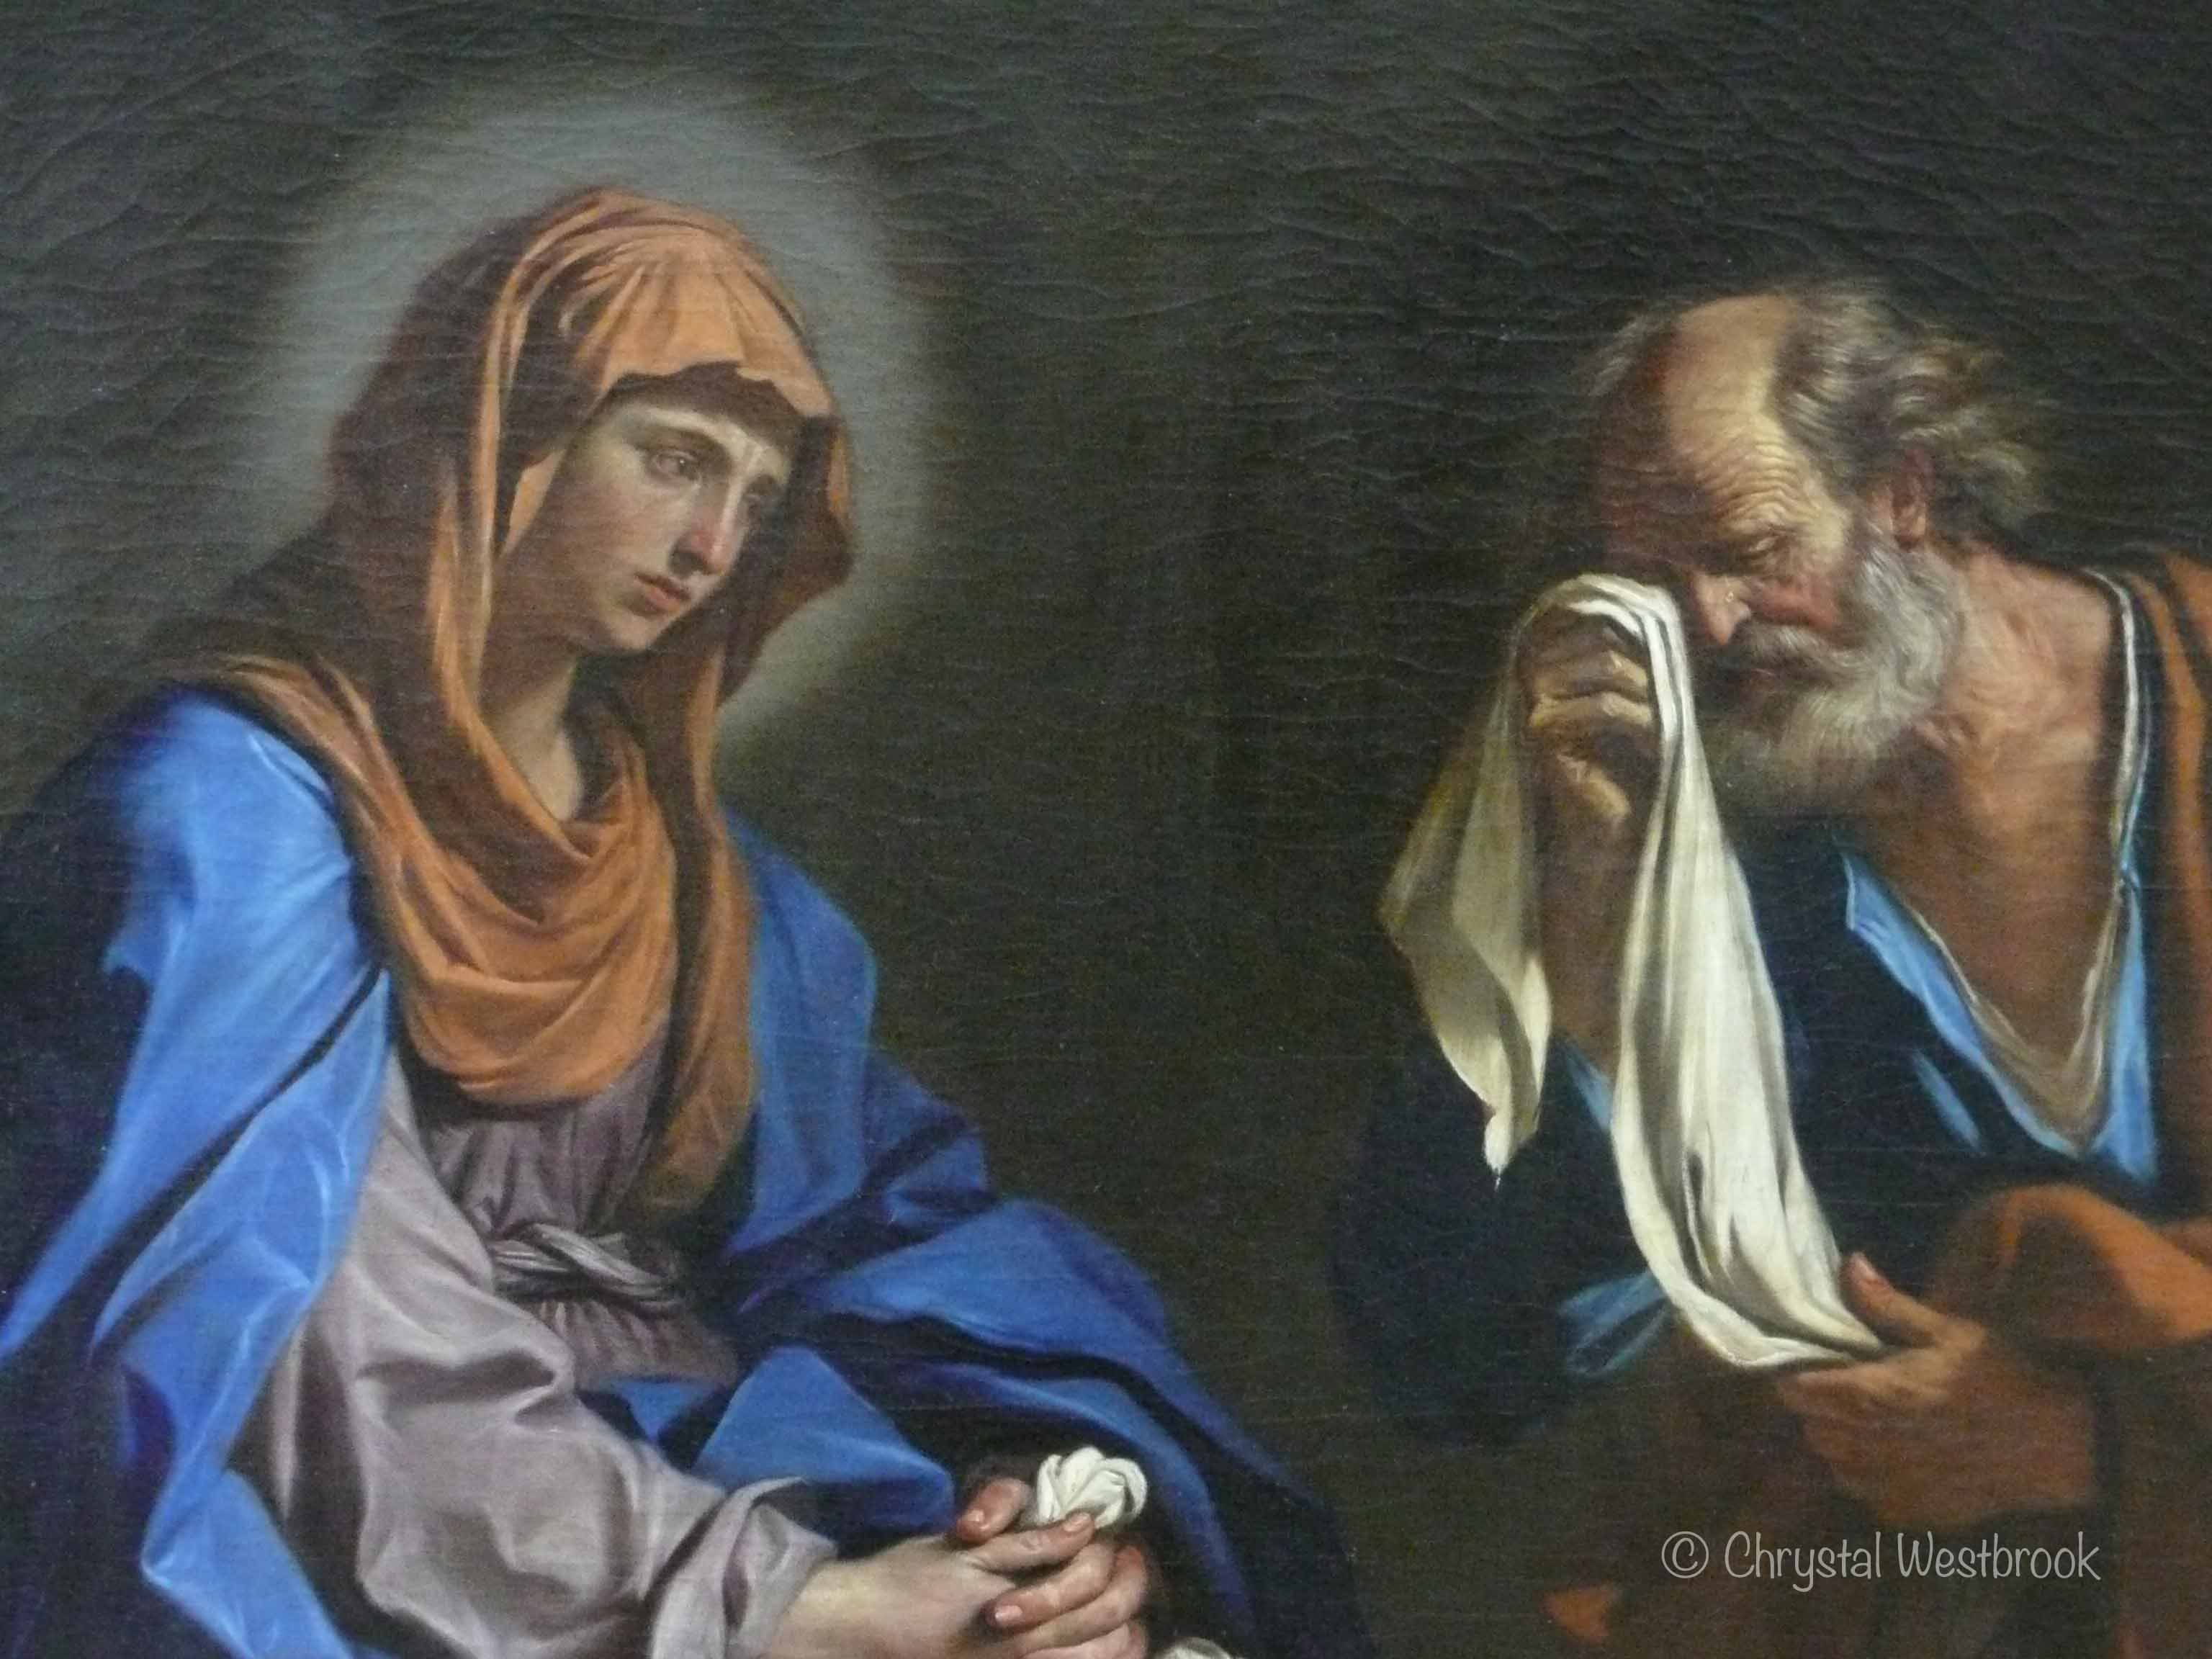 [IMAGE] painting of an older man in tears asking forgiveness of a young woman